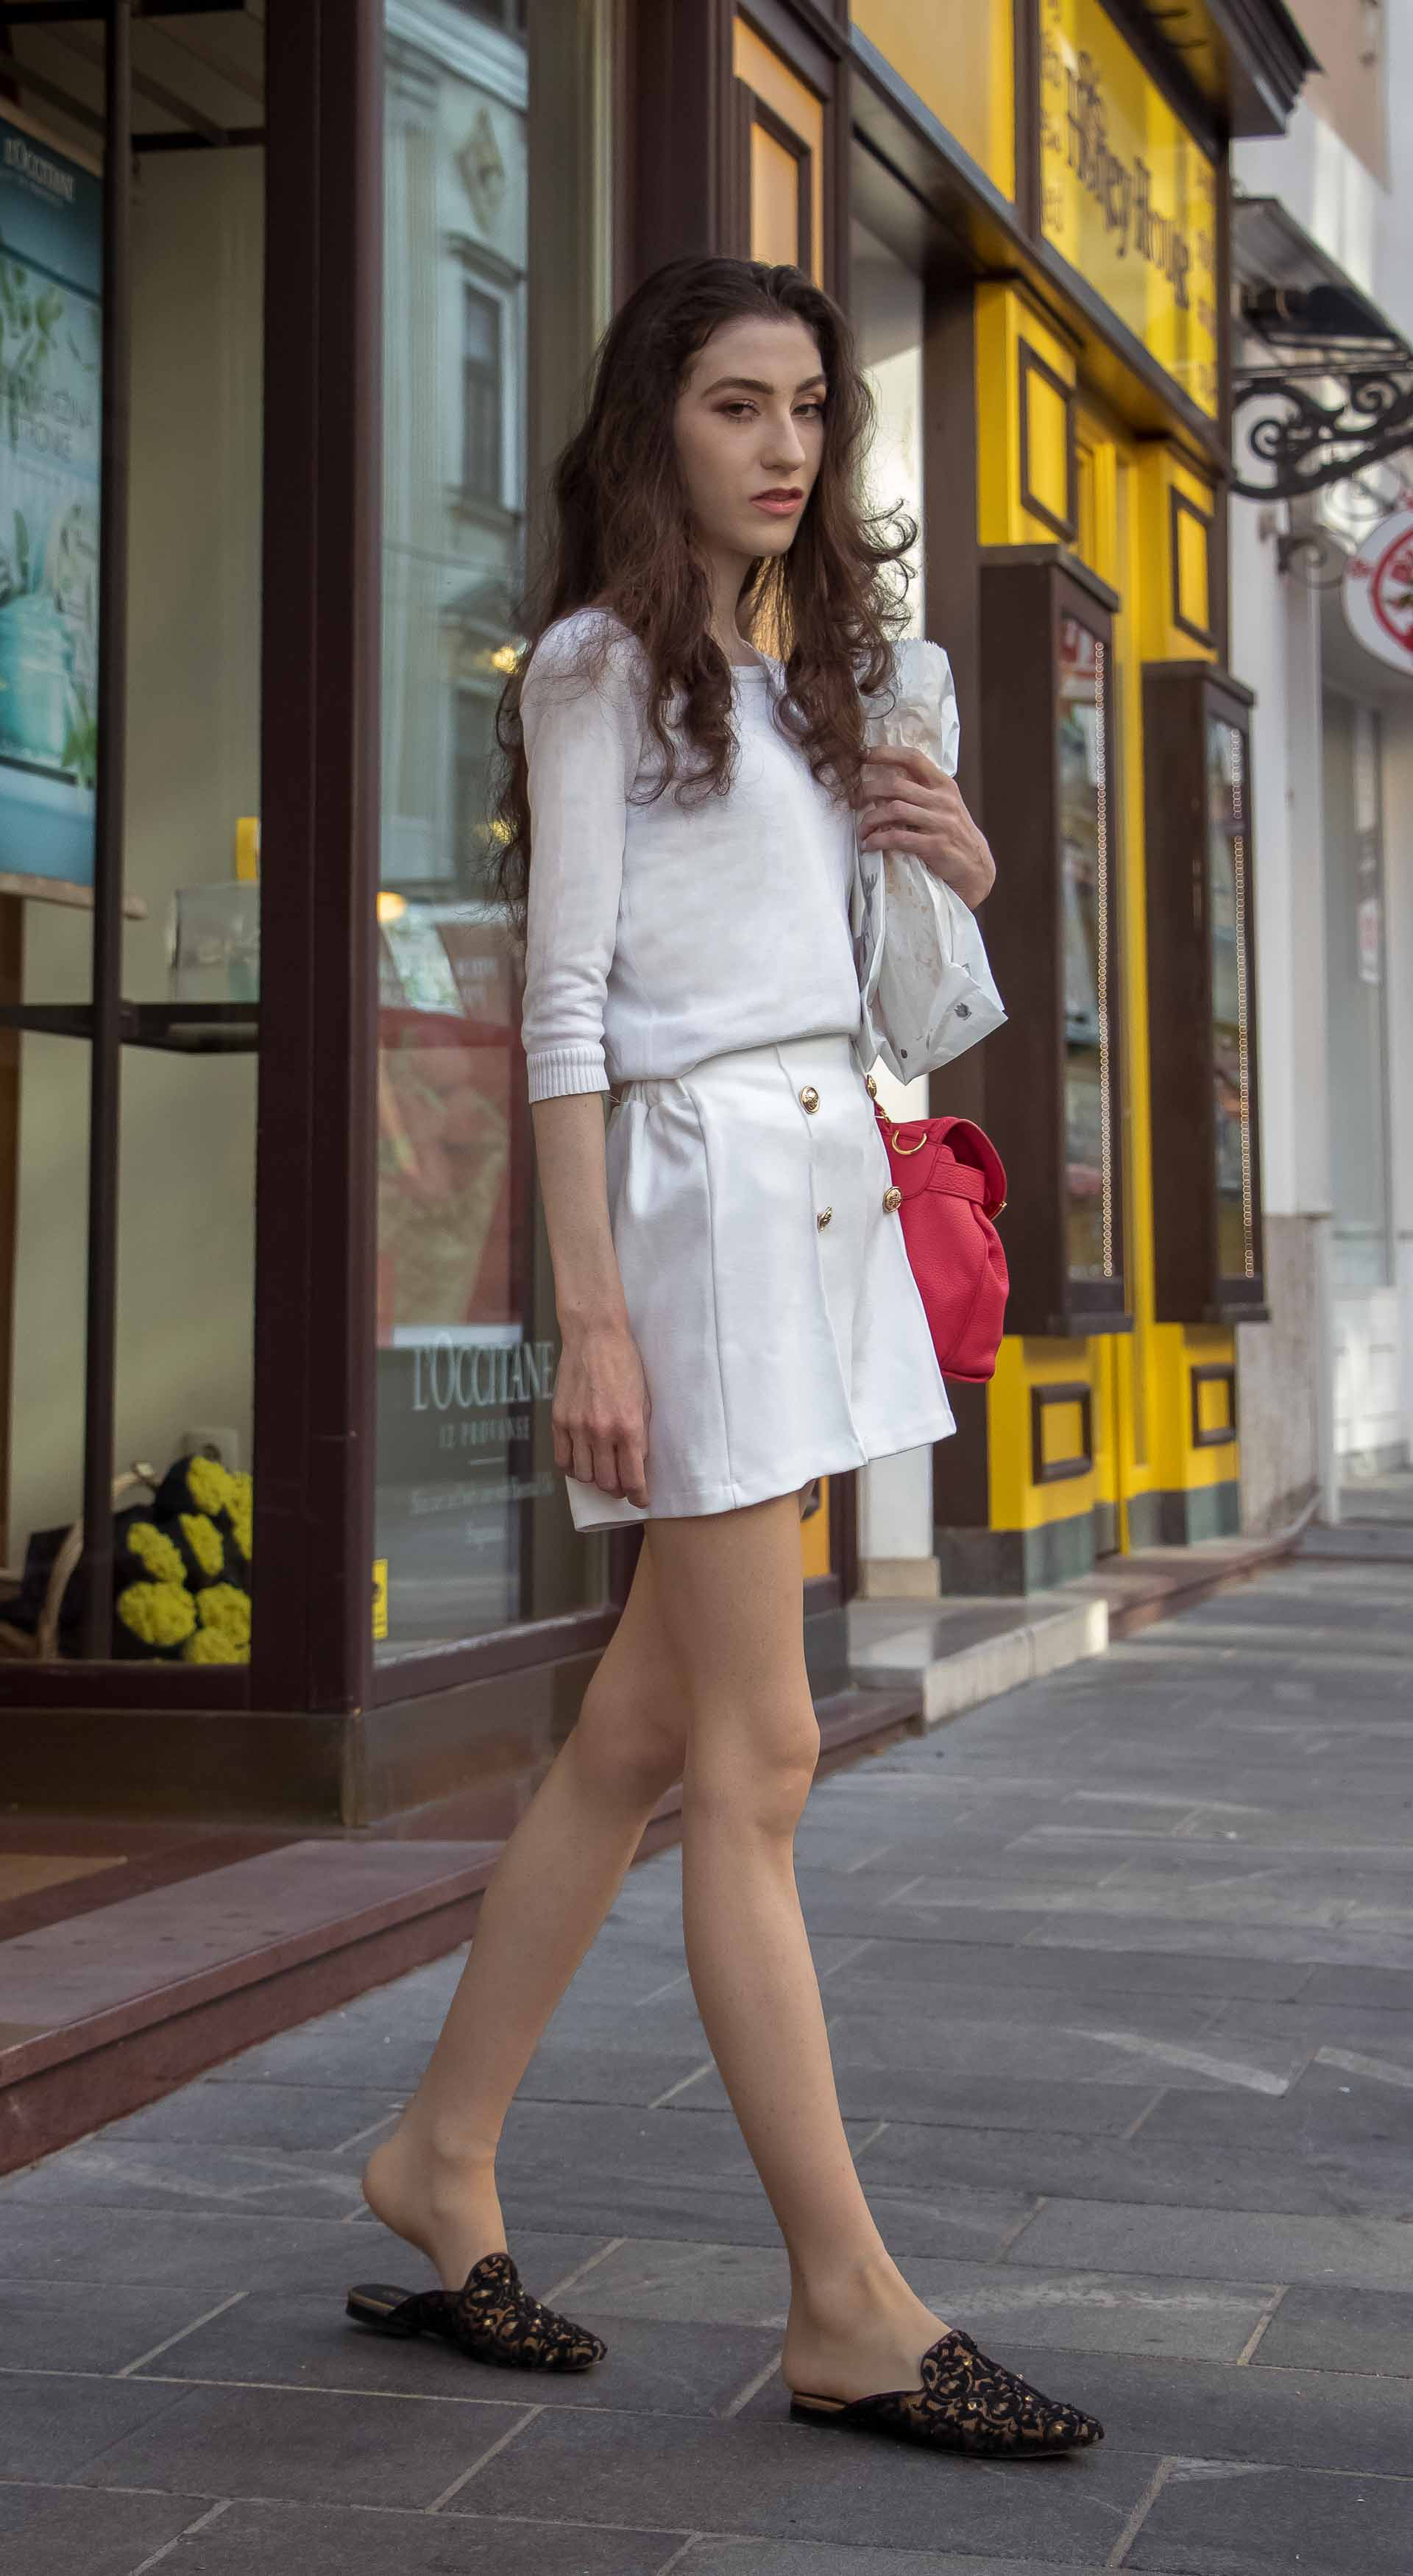 Slovenska modna blogerka Veronika Lipar of Brunette from Wall wearing all in white outfit, a white sweater, white tailored shorts, black flat slipper mules, pink top handle bag, a paper bag while standing on the street in Ljubljana